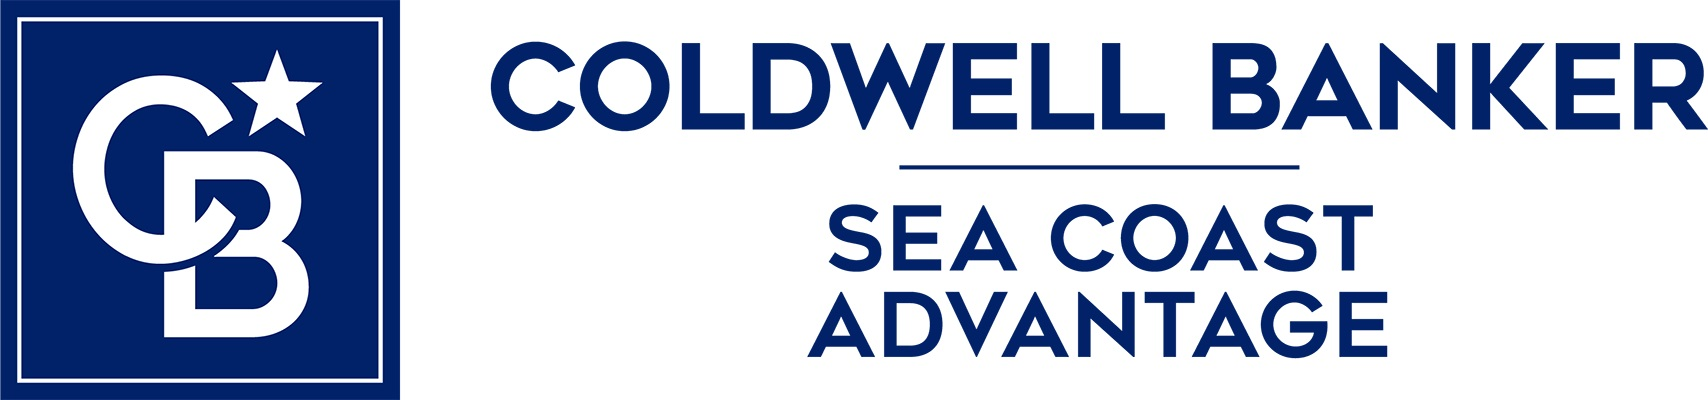 Edward Schaack - Coldwell Banker Sea Coast Advantage Realty